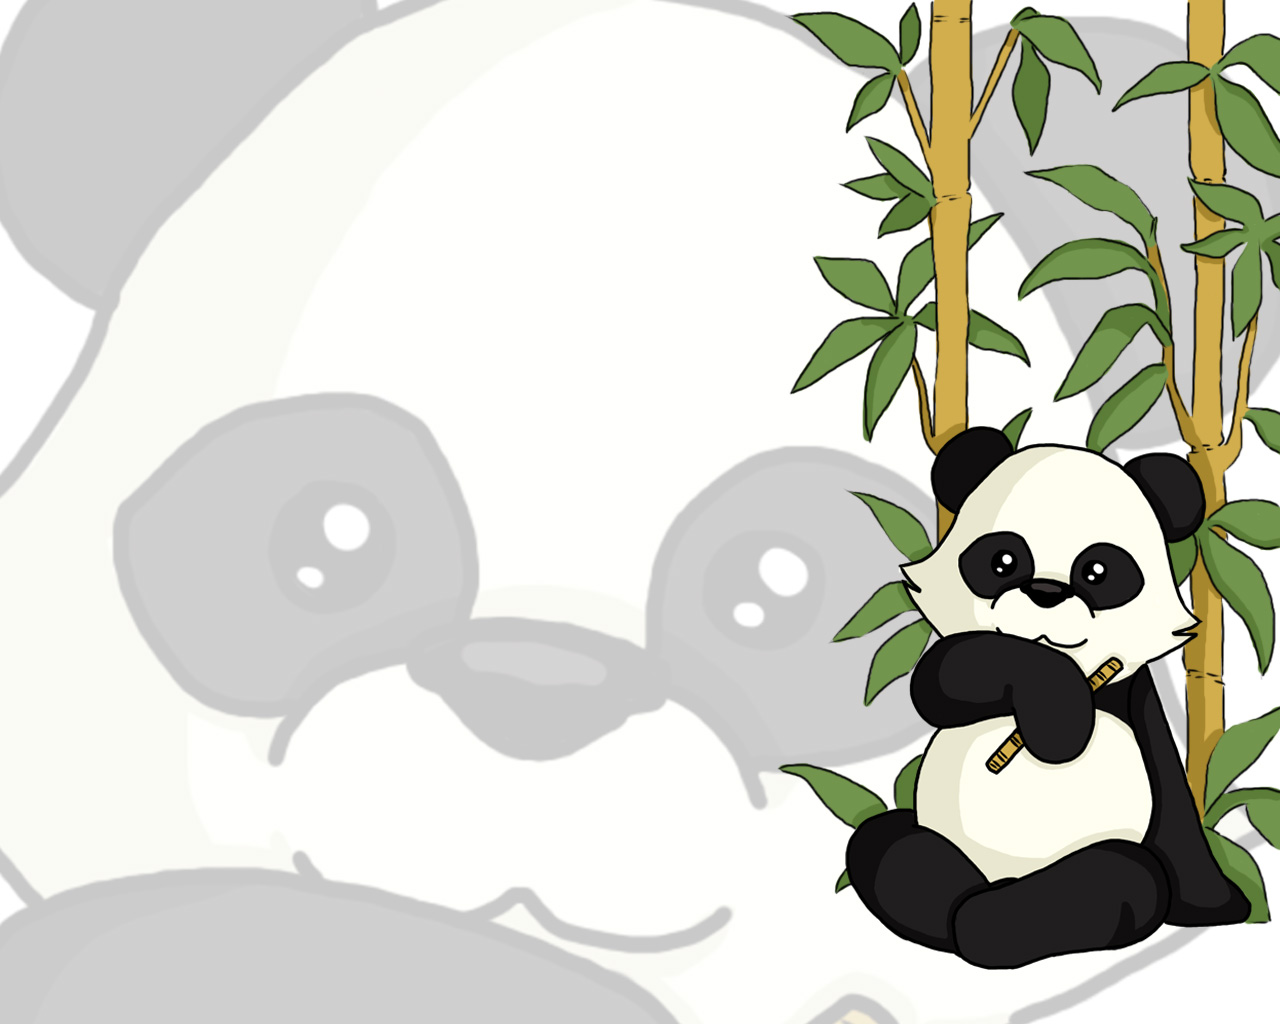 panda wallpaper 1 by BattleAngelMel 1280x1024